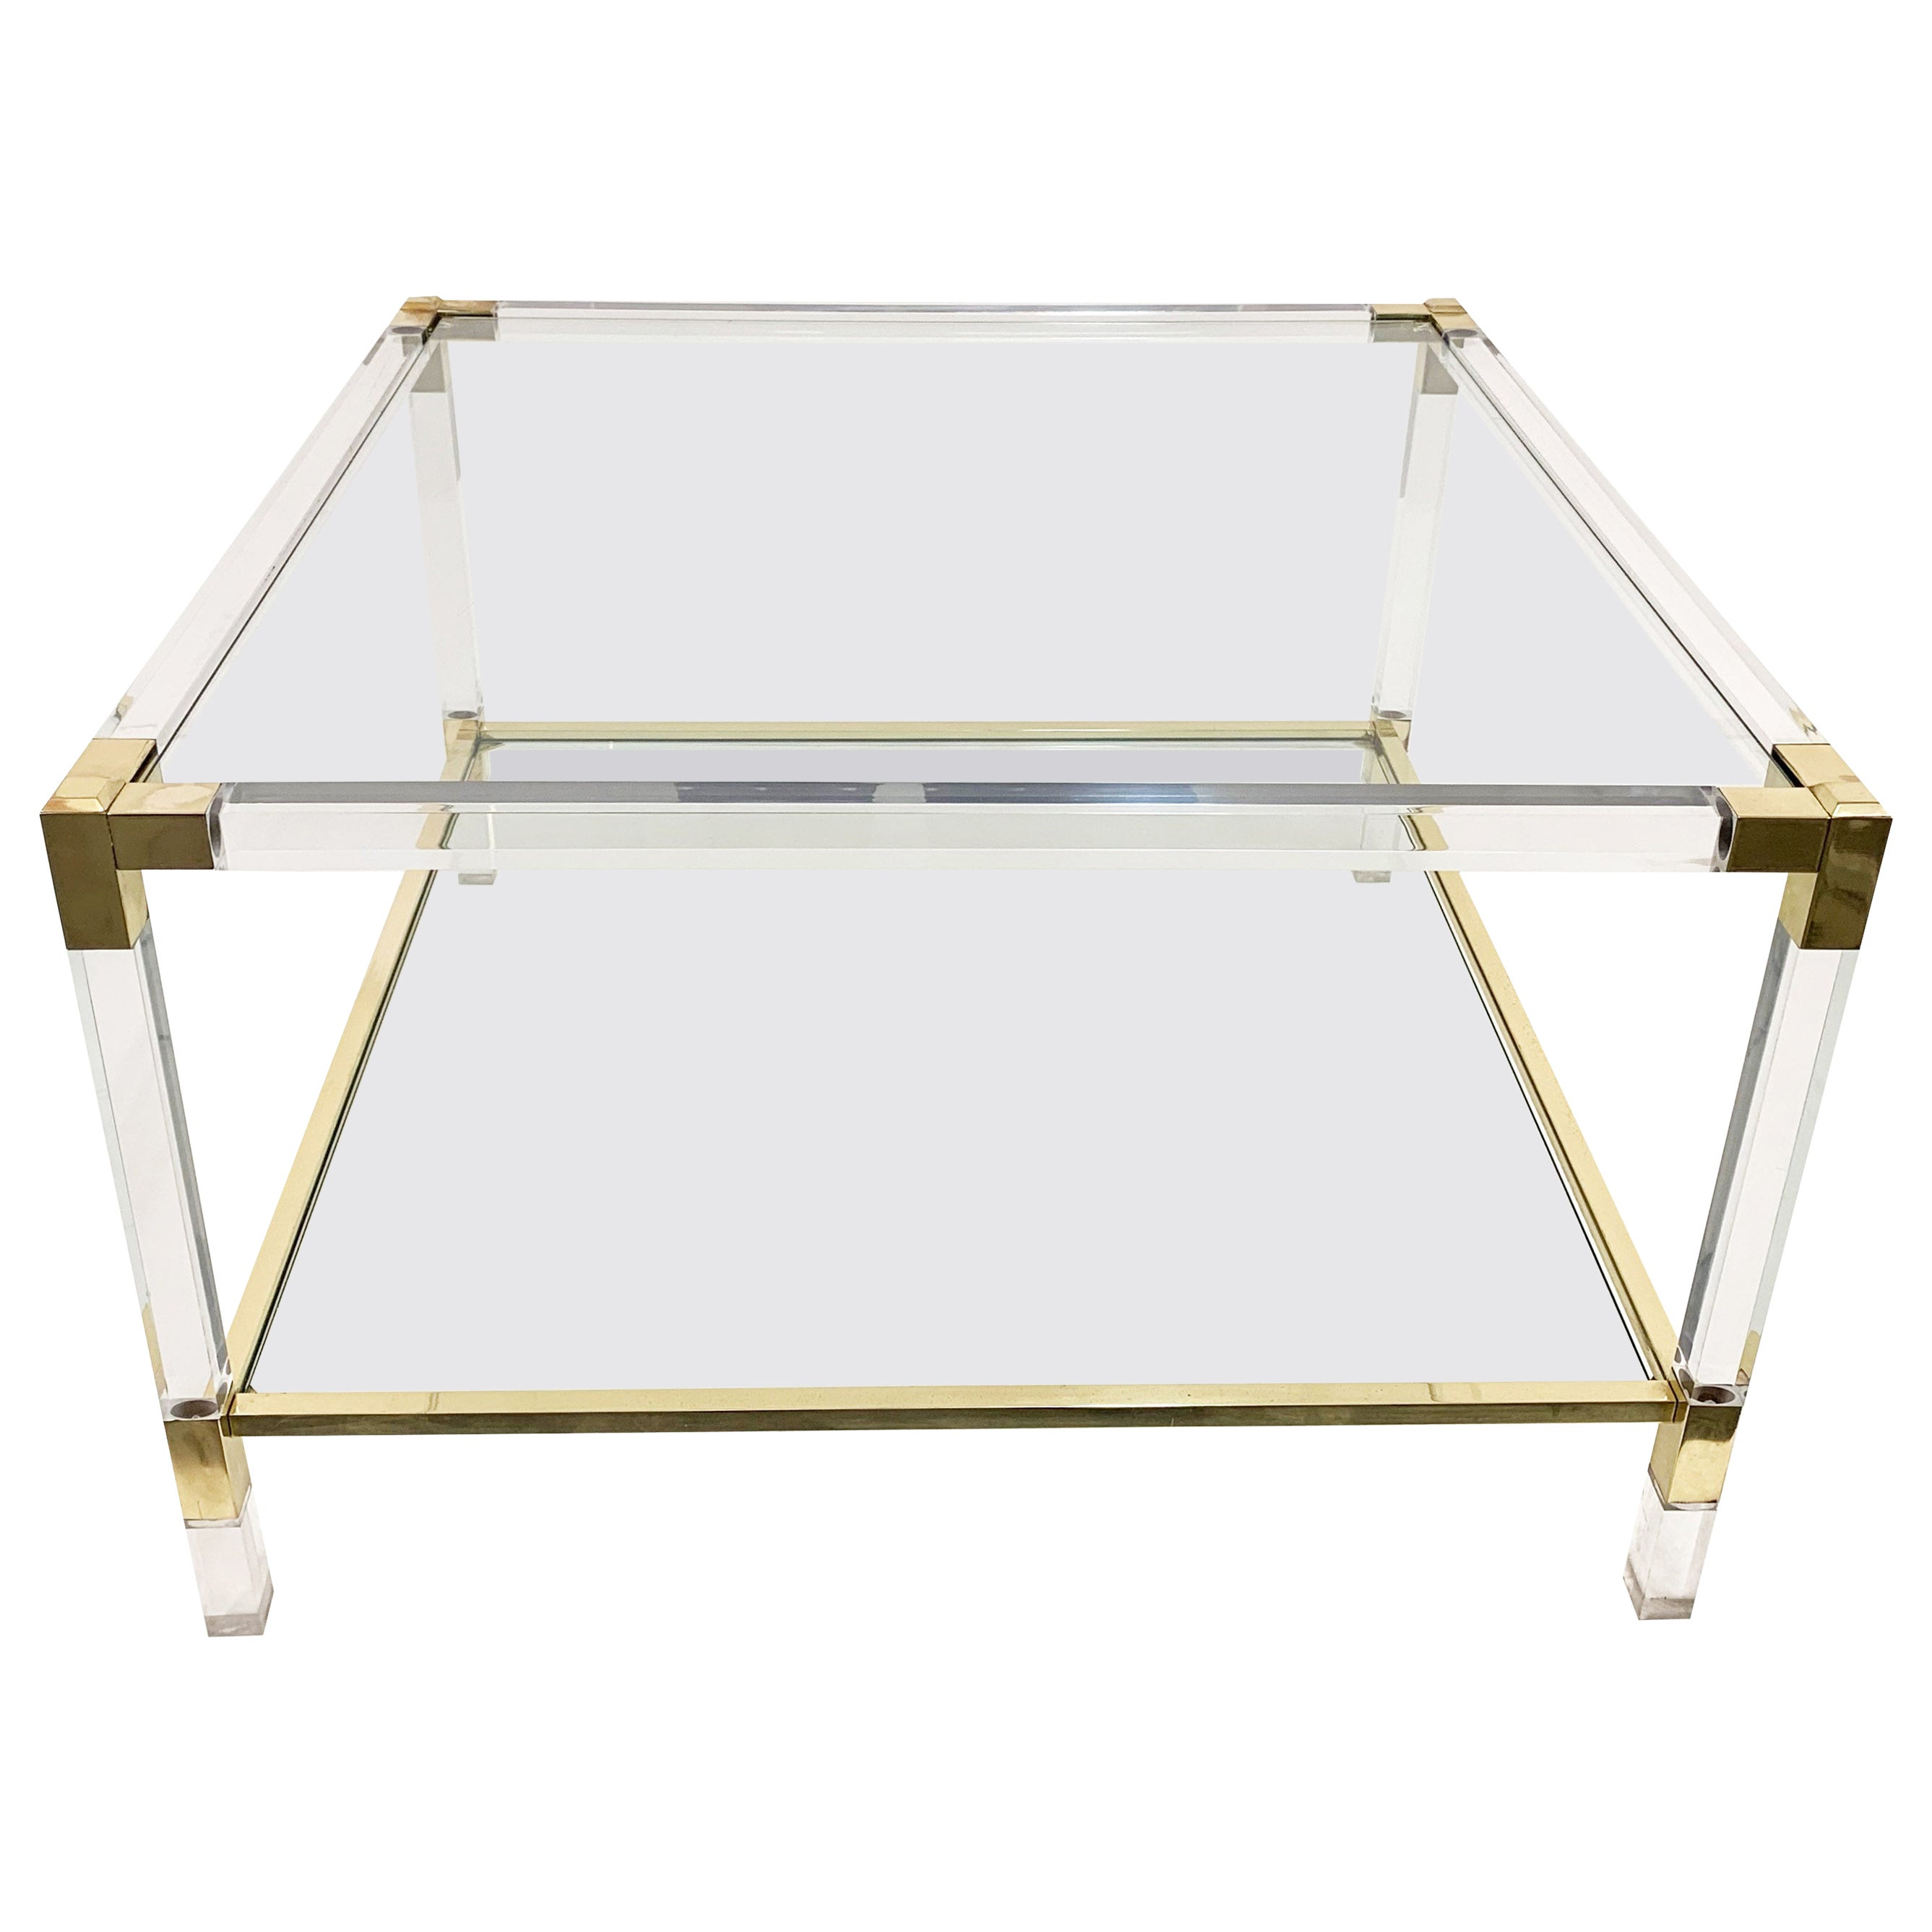 Charles Hollis Jones Plexiglass and Brass Italian Square Cocktail Table, 1970s